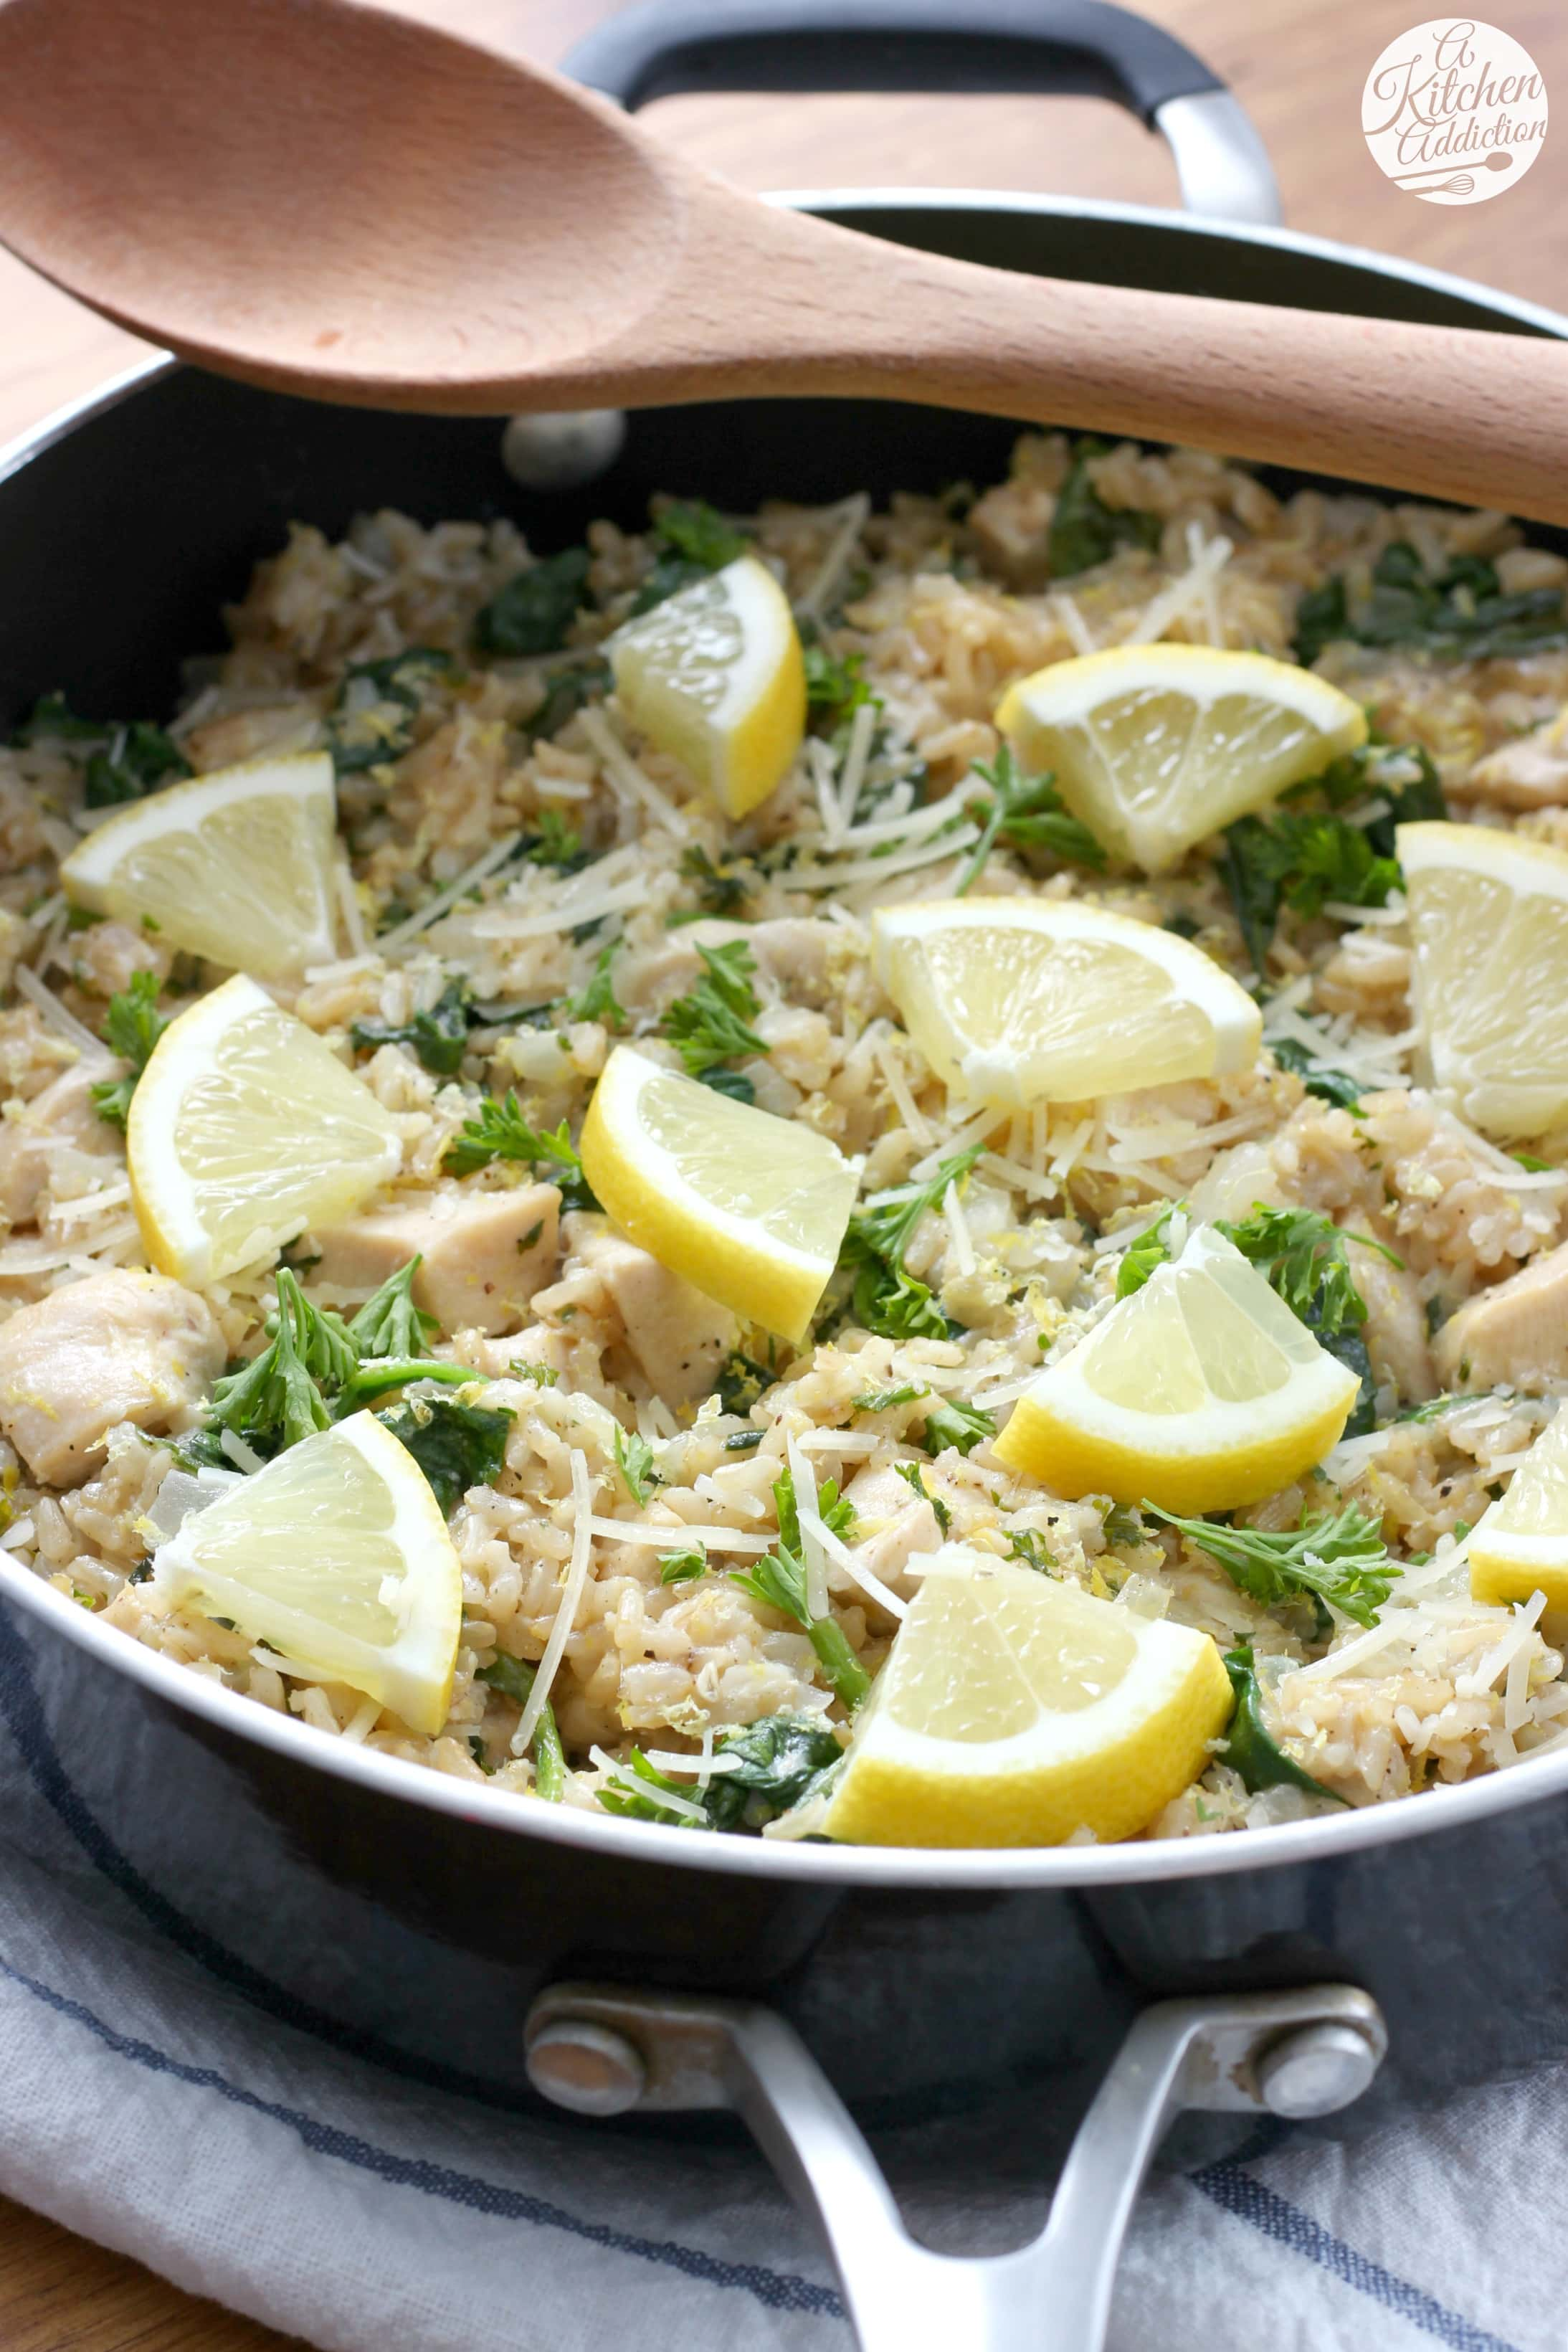 20 Minute Lemon Parmesan Chicken and Rice Skillet Recipe from A Kitchen Addiction